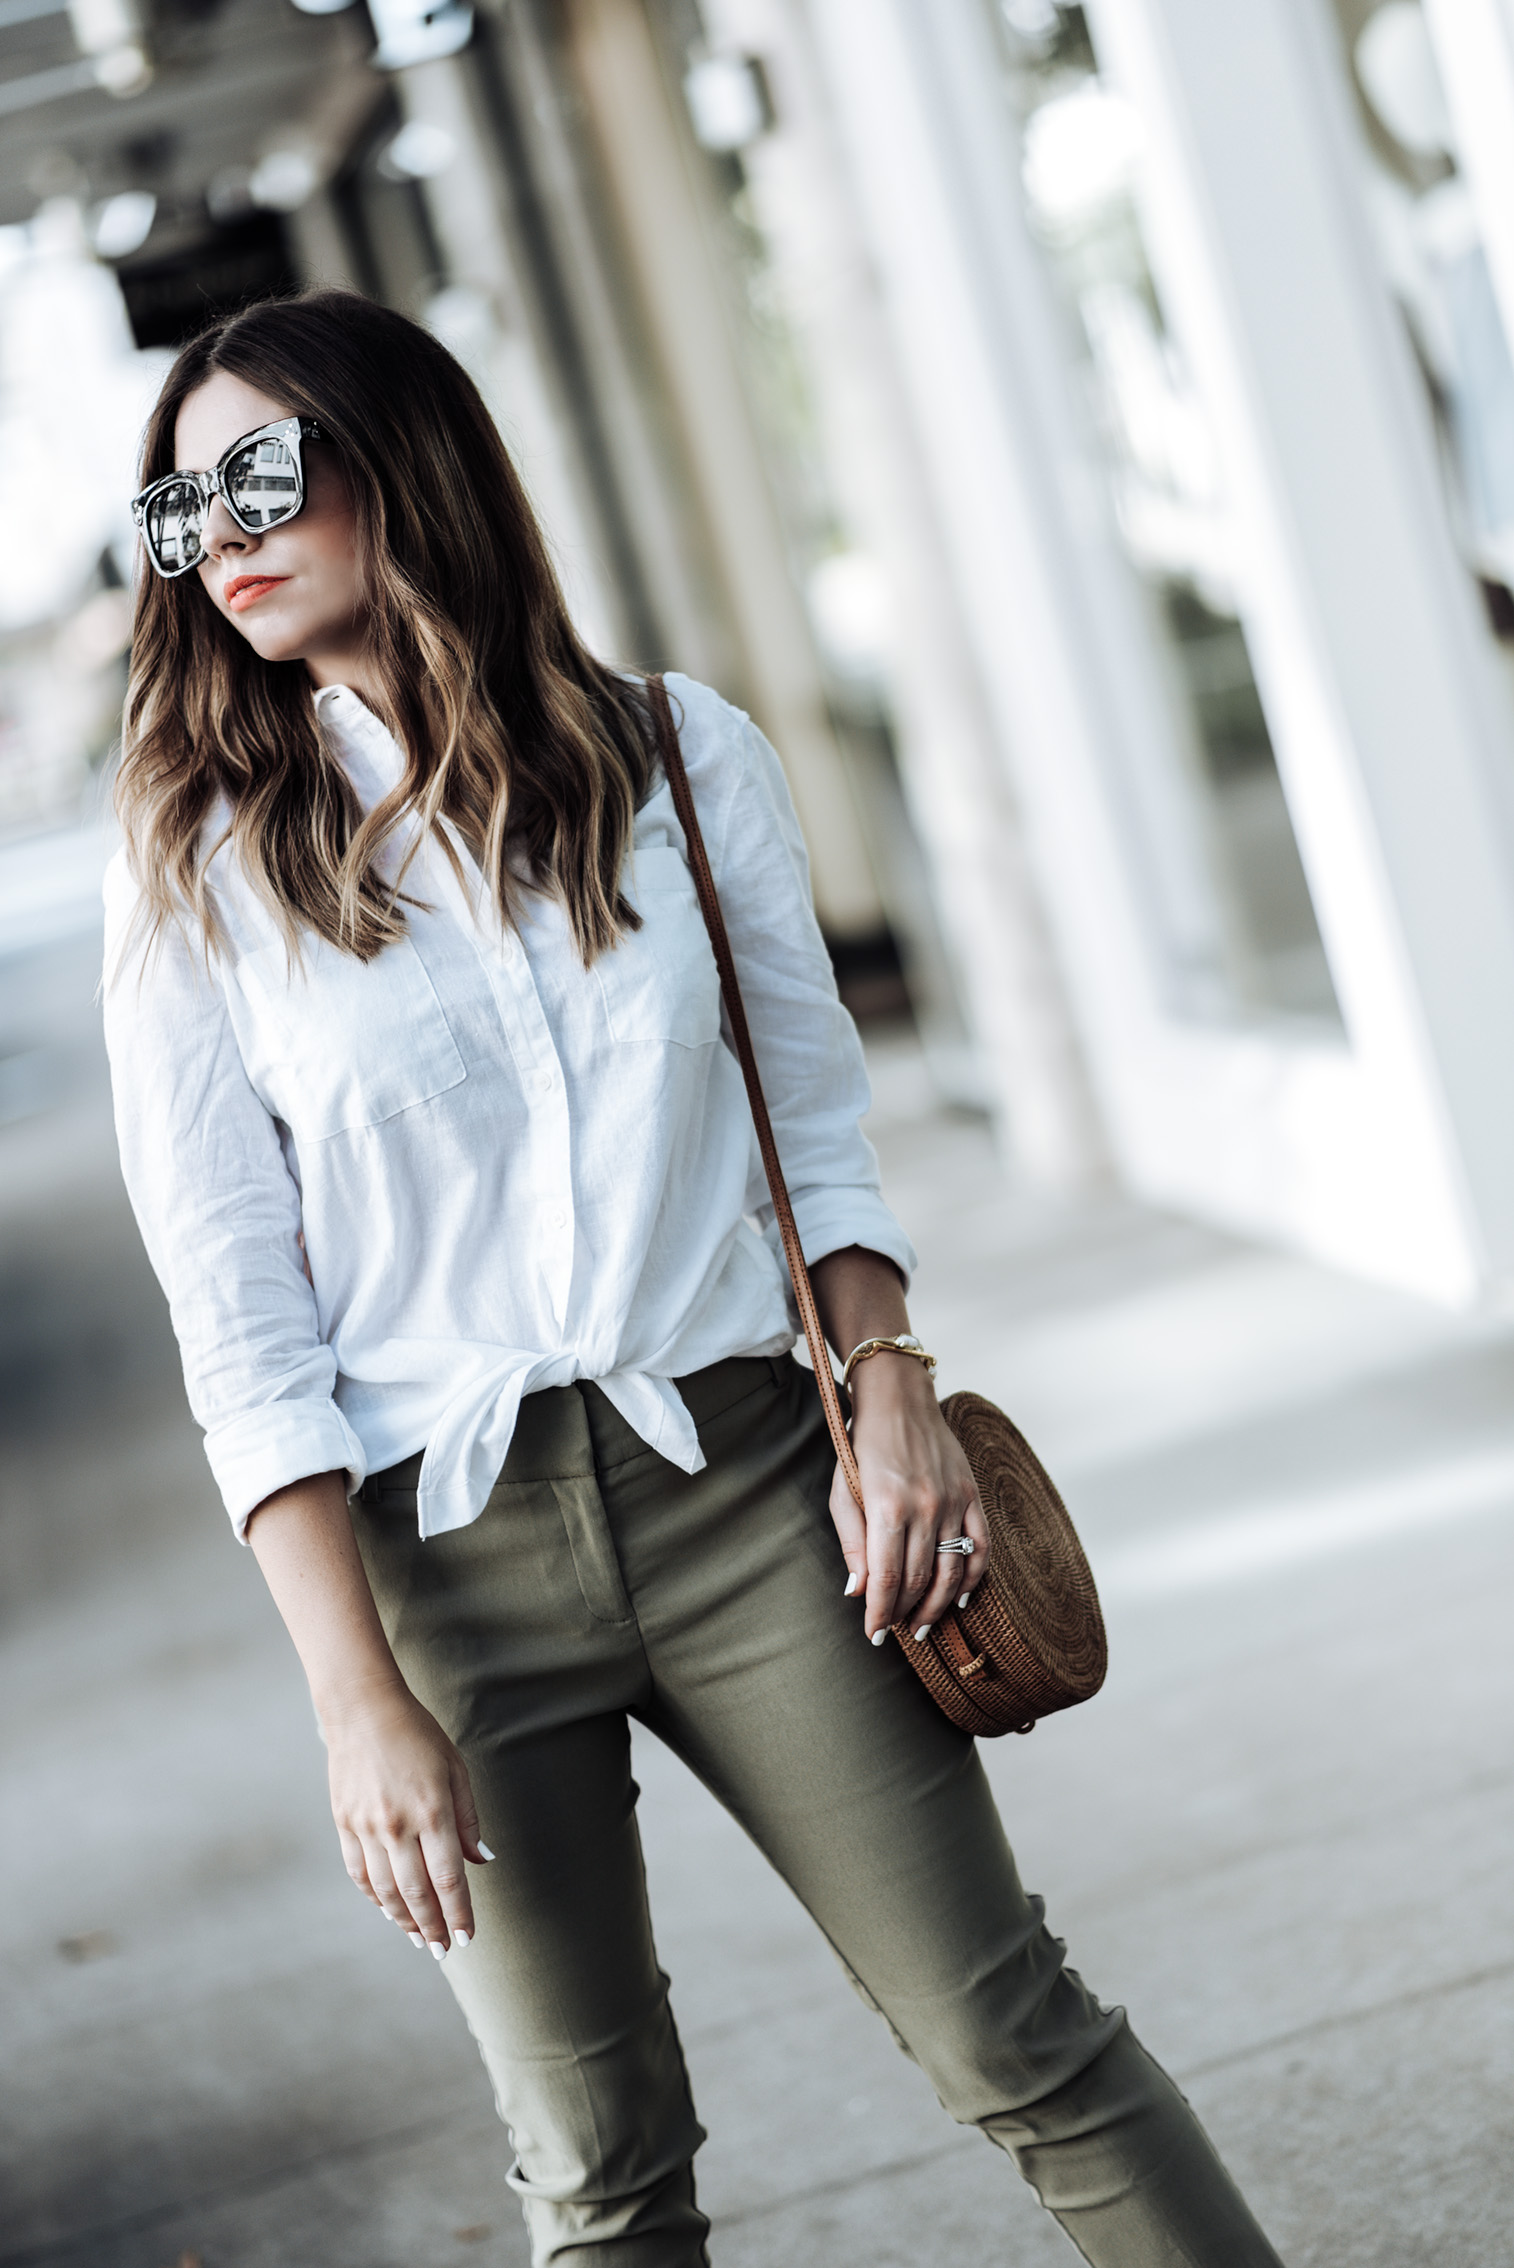 Tiffany Jais Houston fashion and lifestyle blogger | Versatile closet pieces |Worthington Lux ankle pant | White button down shirt | Round rattan bag | The bridge Sandal by Everlane | C/O Kendra Scott bracelets here & here | C/O Monica Vinader Bangle